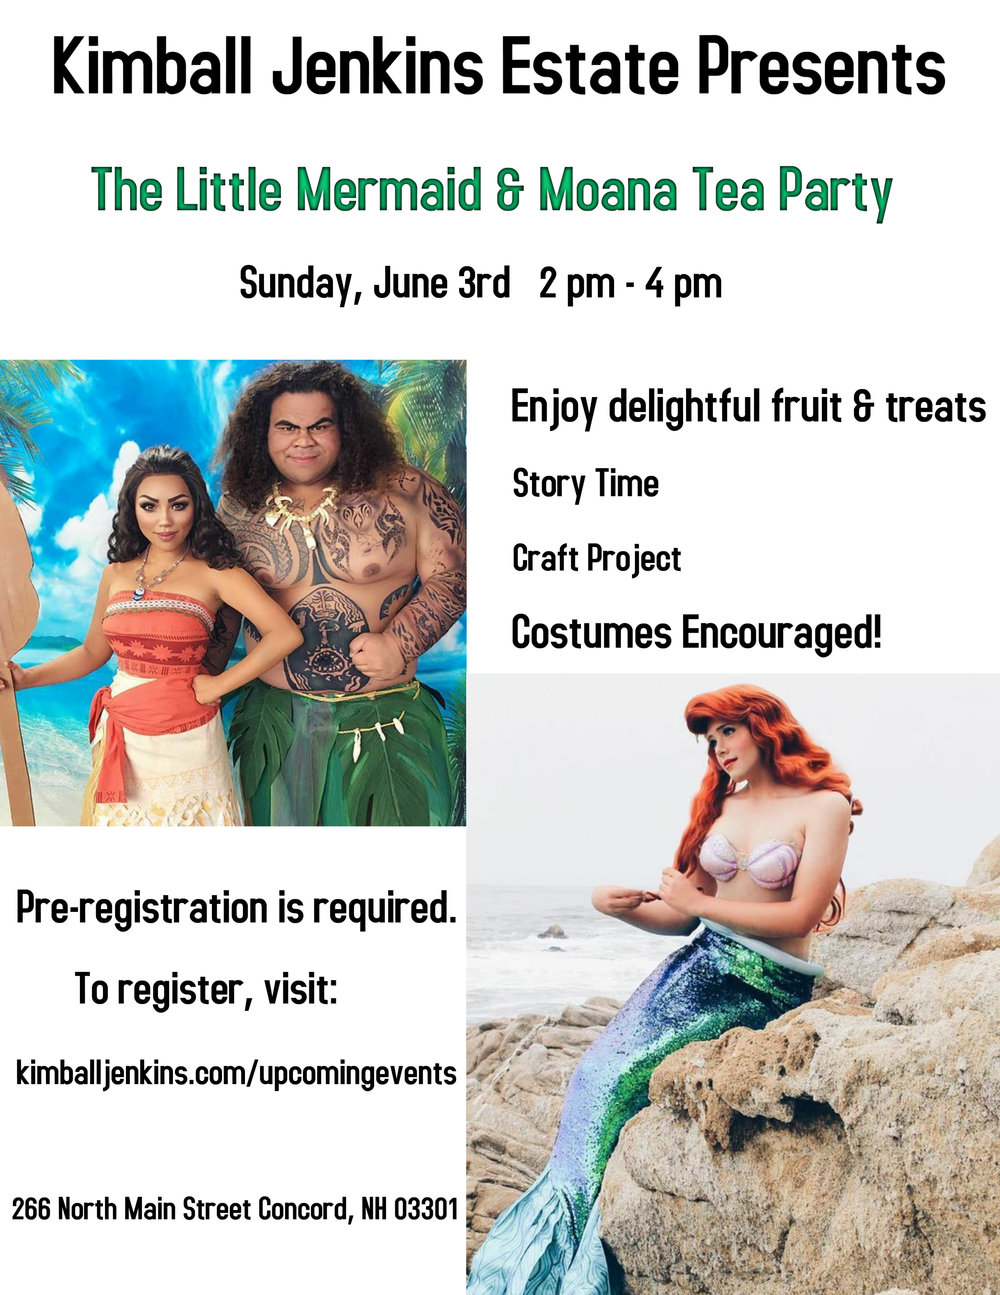 little mermaid & moana.jpg